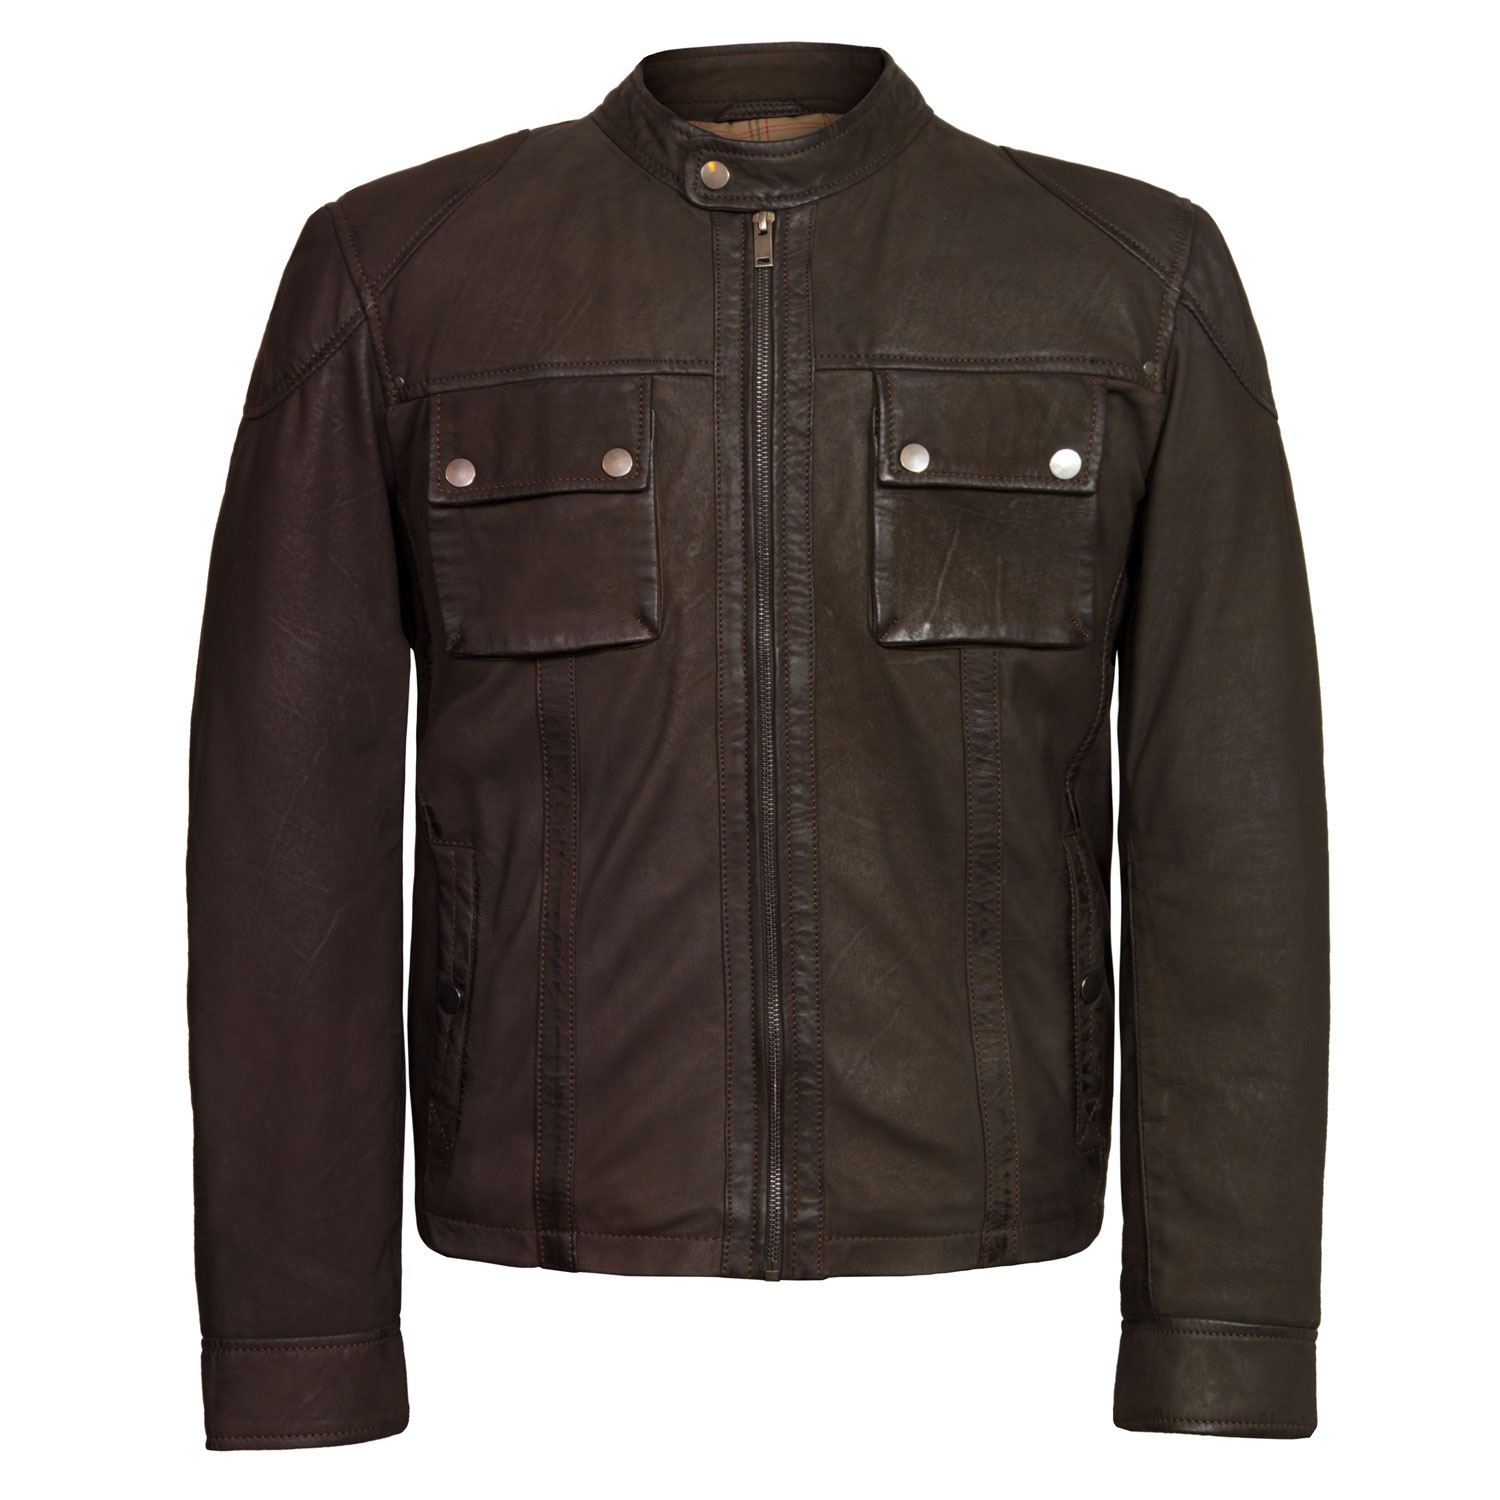 Men's Brown Leather Jacket: Marlon